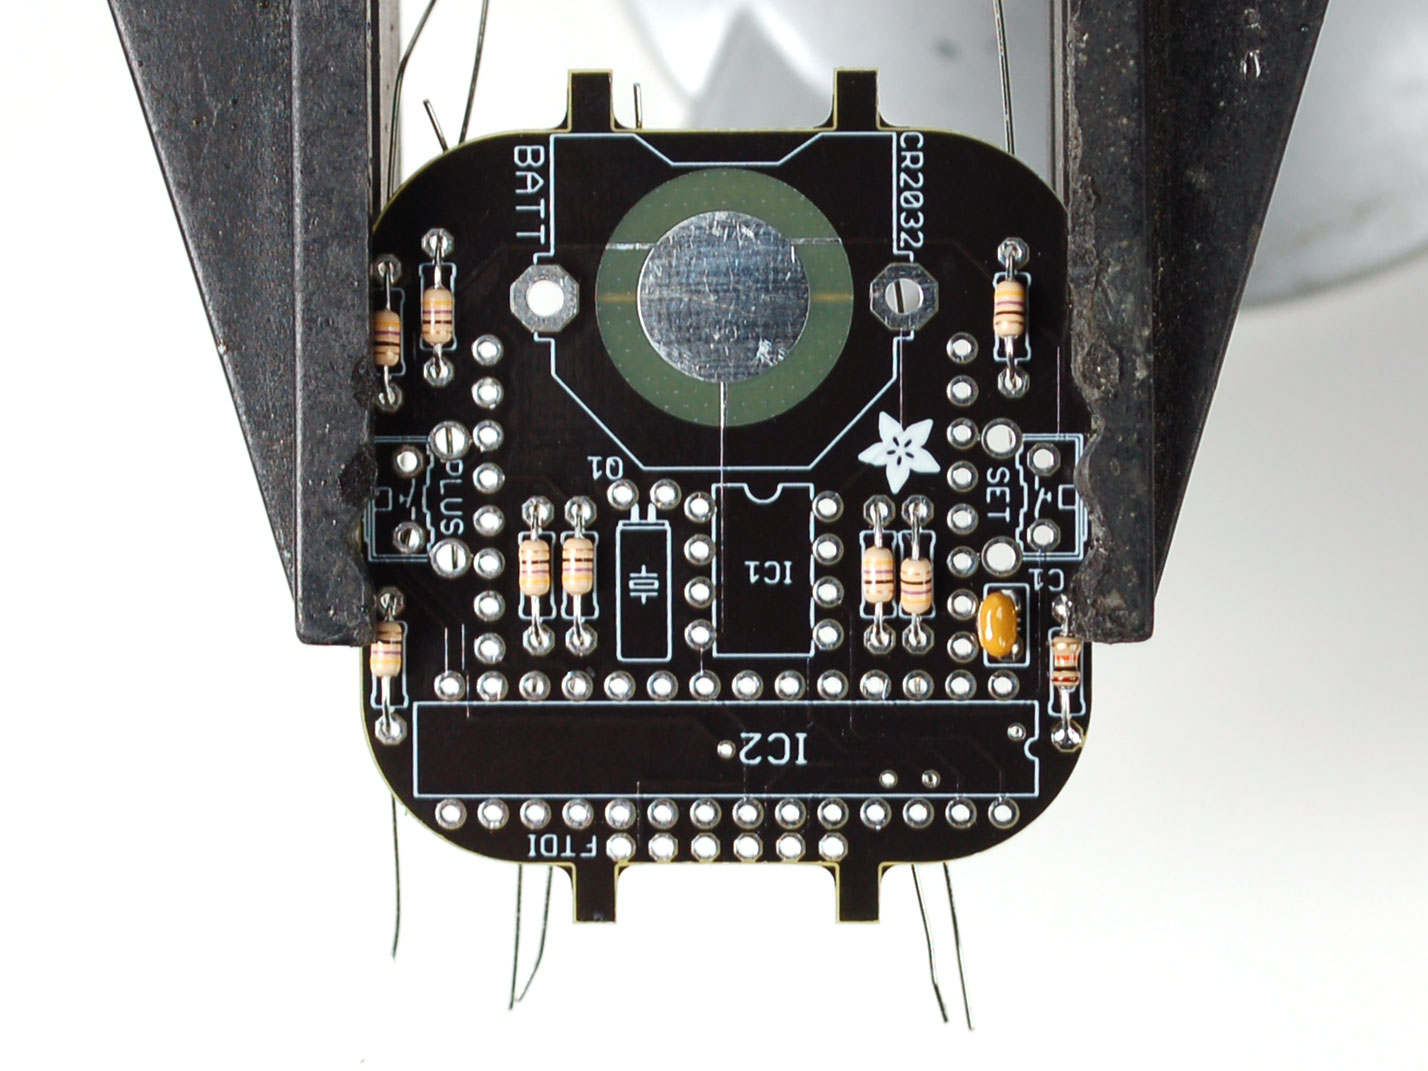 adafruit_products_resplace.jpg